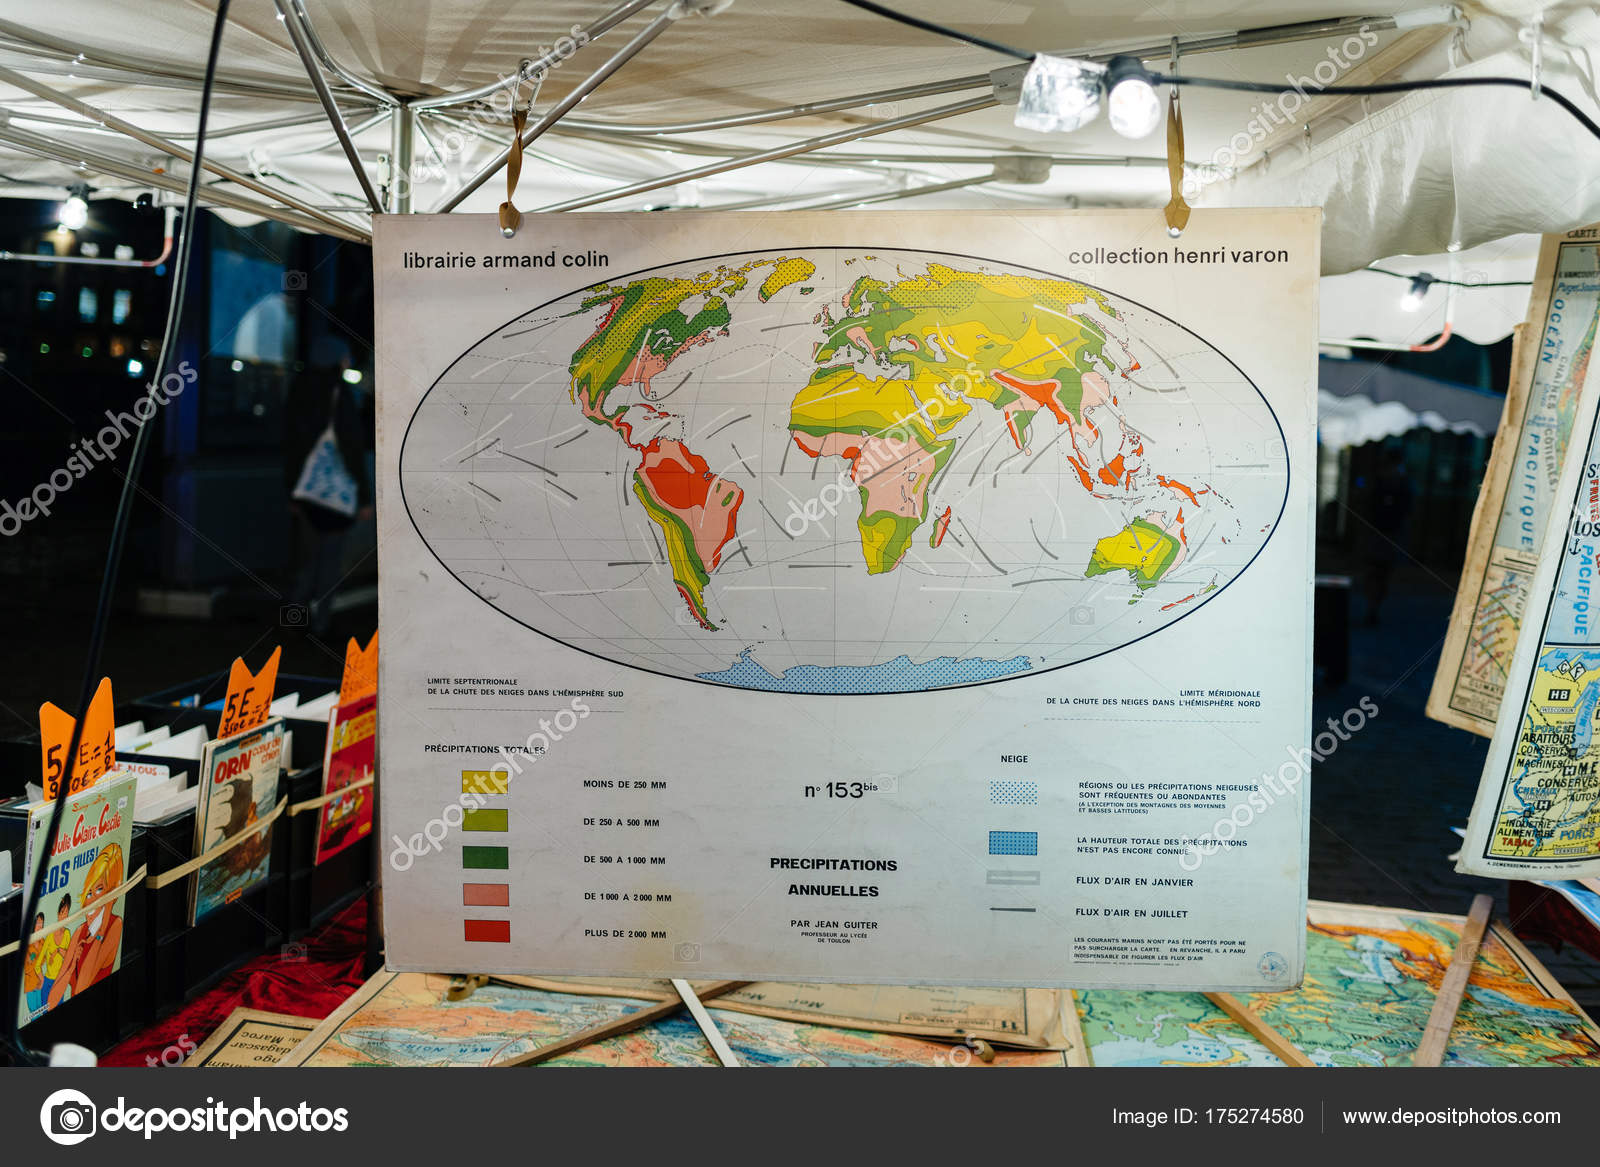 Vintage world map with annual precipitations at a flea market st vintage world map with annual precipitations at a flea market st stock photo gumiabroncs